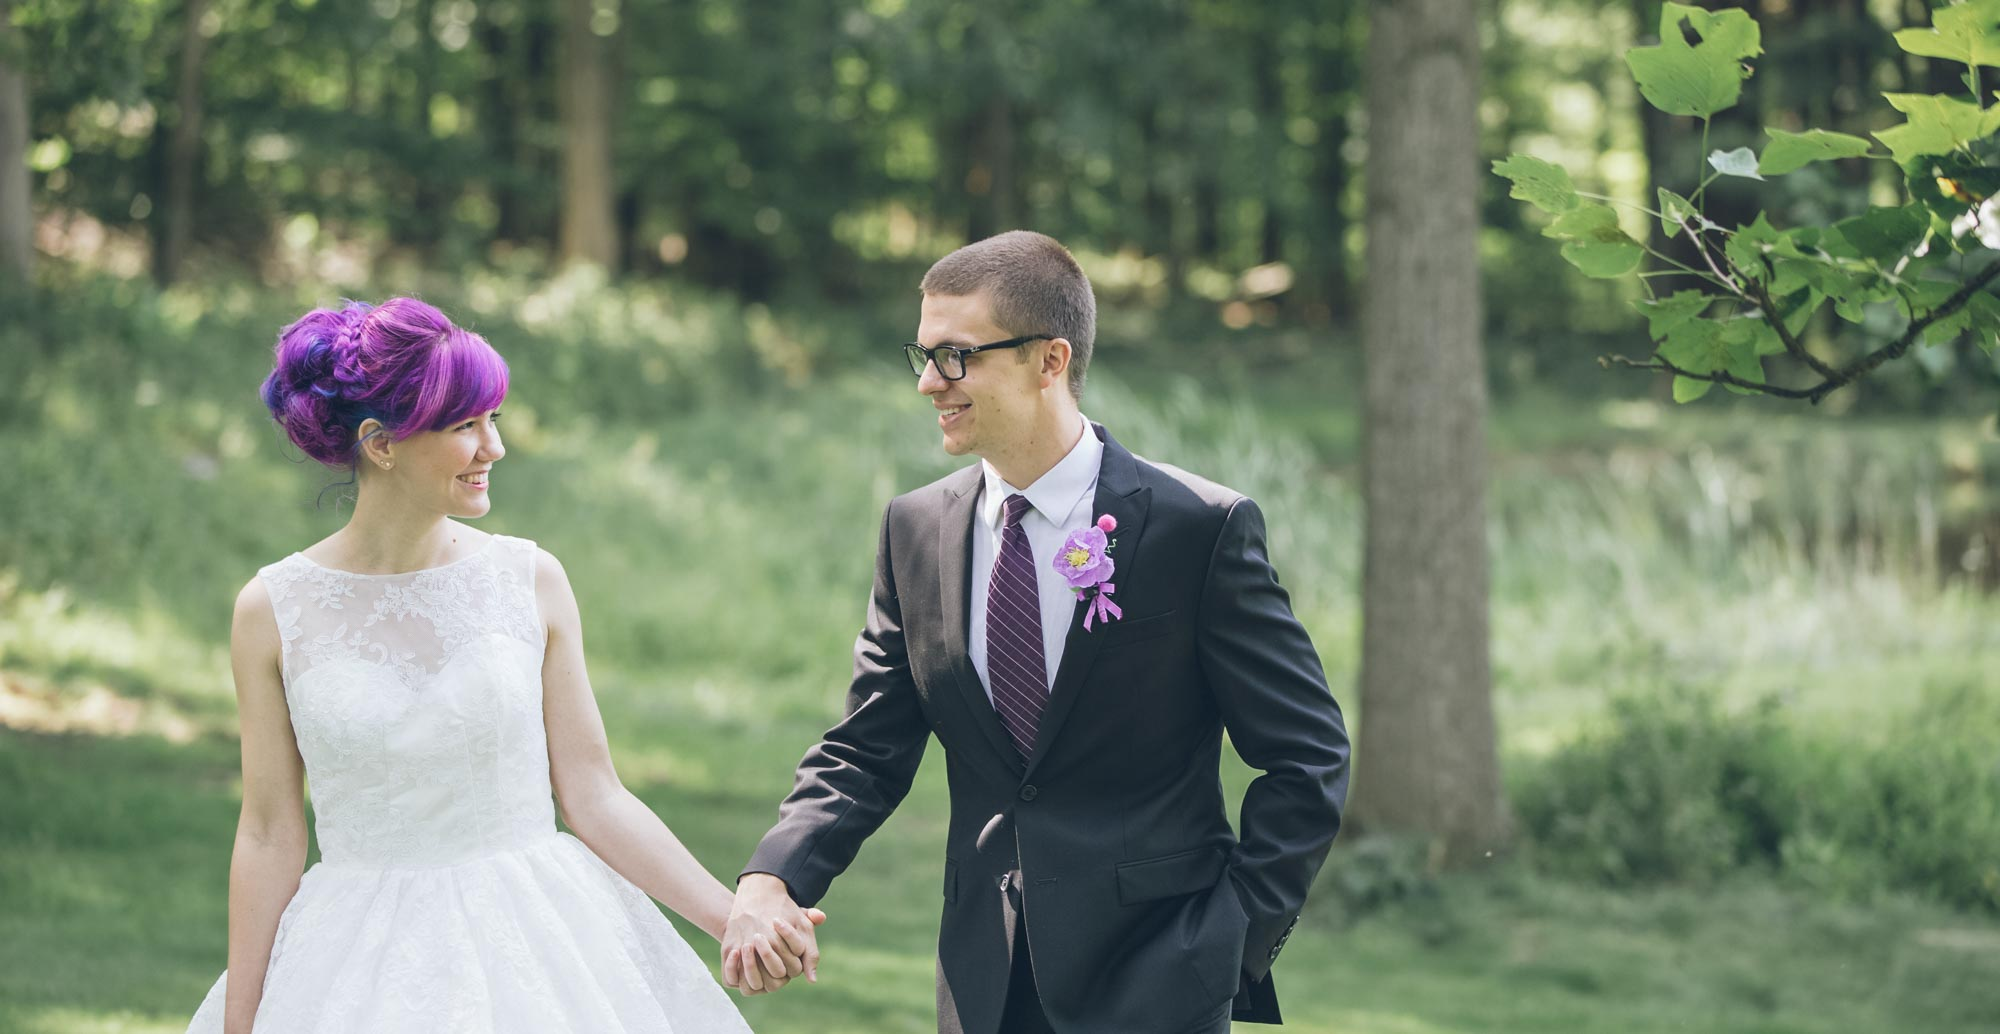 newlyweds holding hands, photographed by Eivan's in Columbus